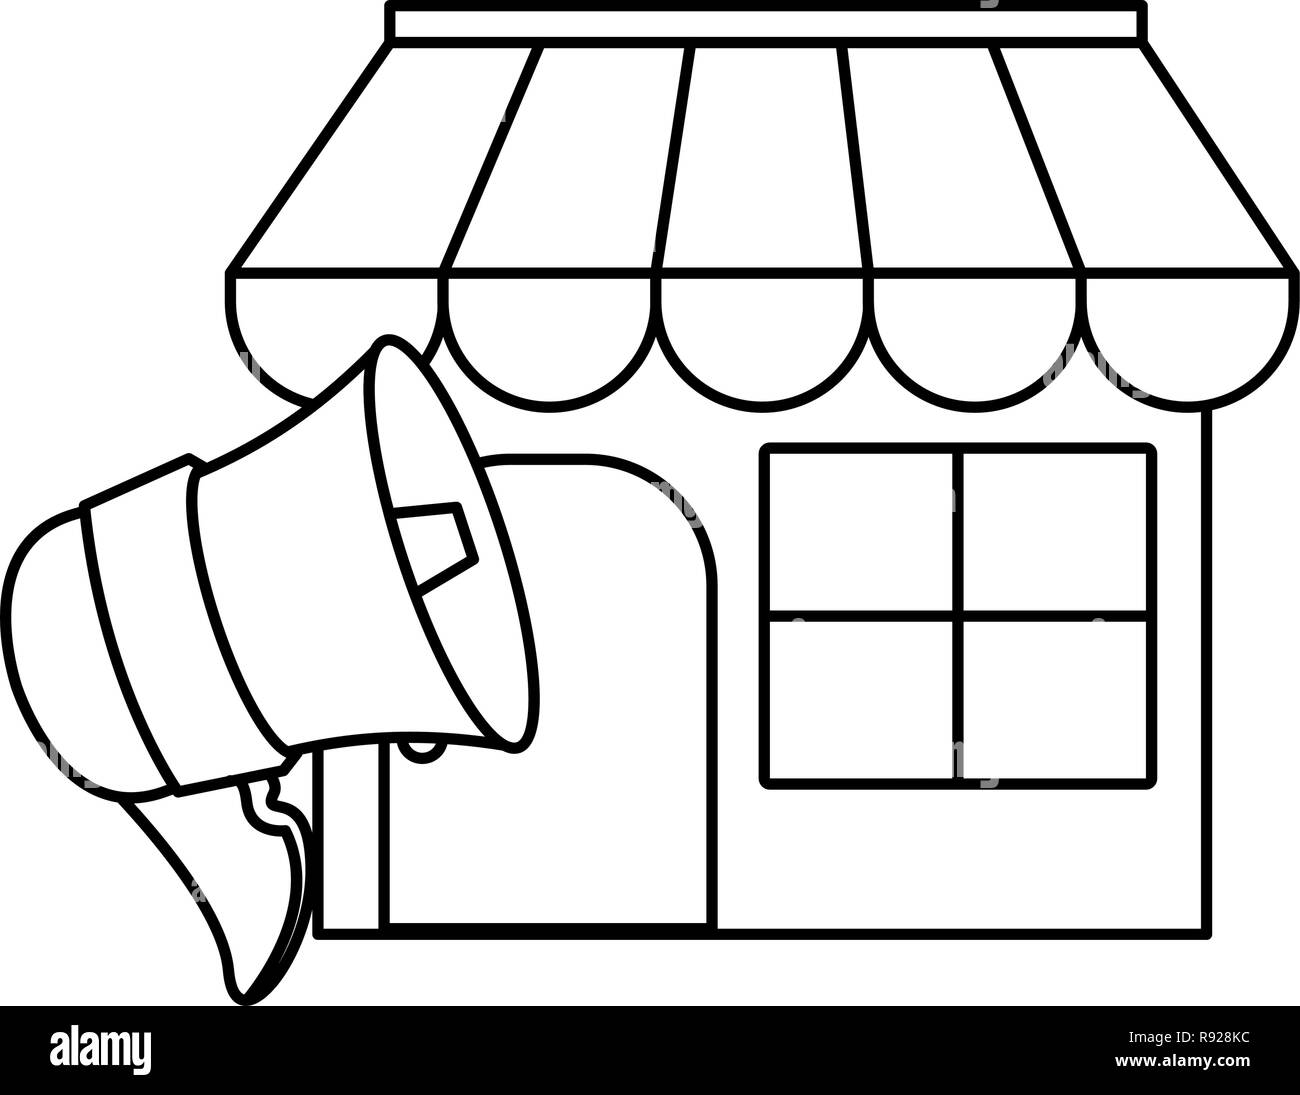 Lautsprecher Online Lautsprecher Online Shopping Markt Digital Vector Illustration